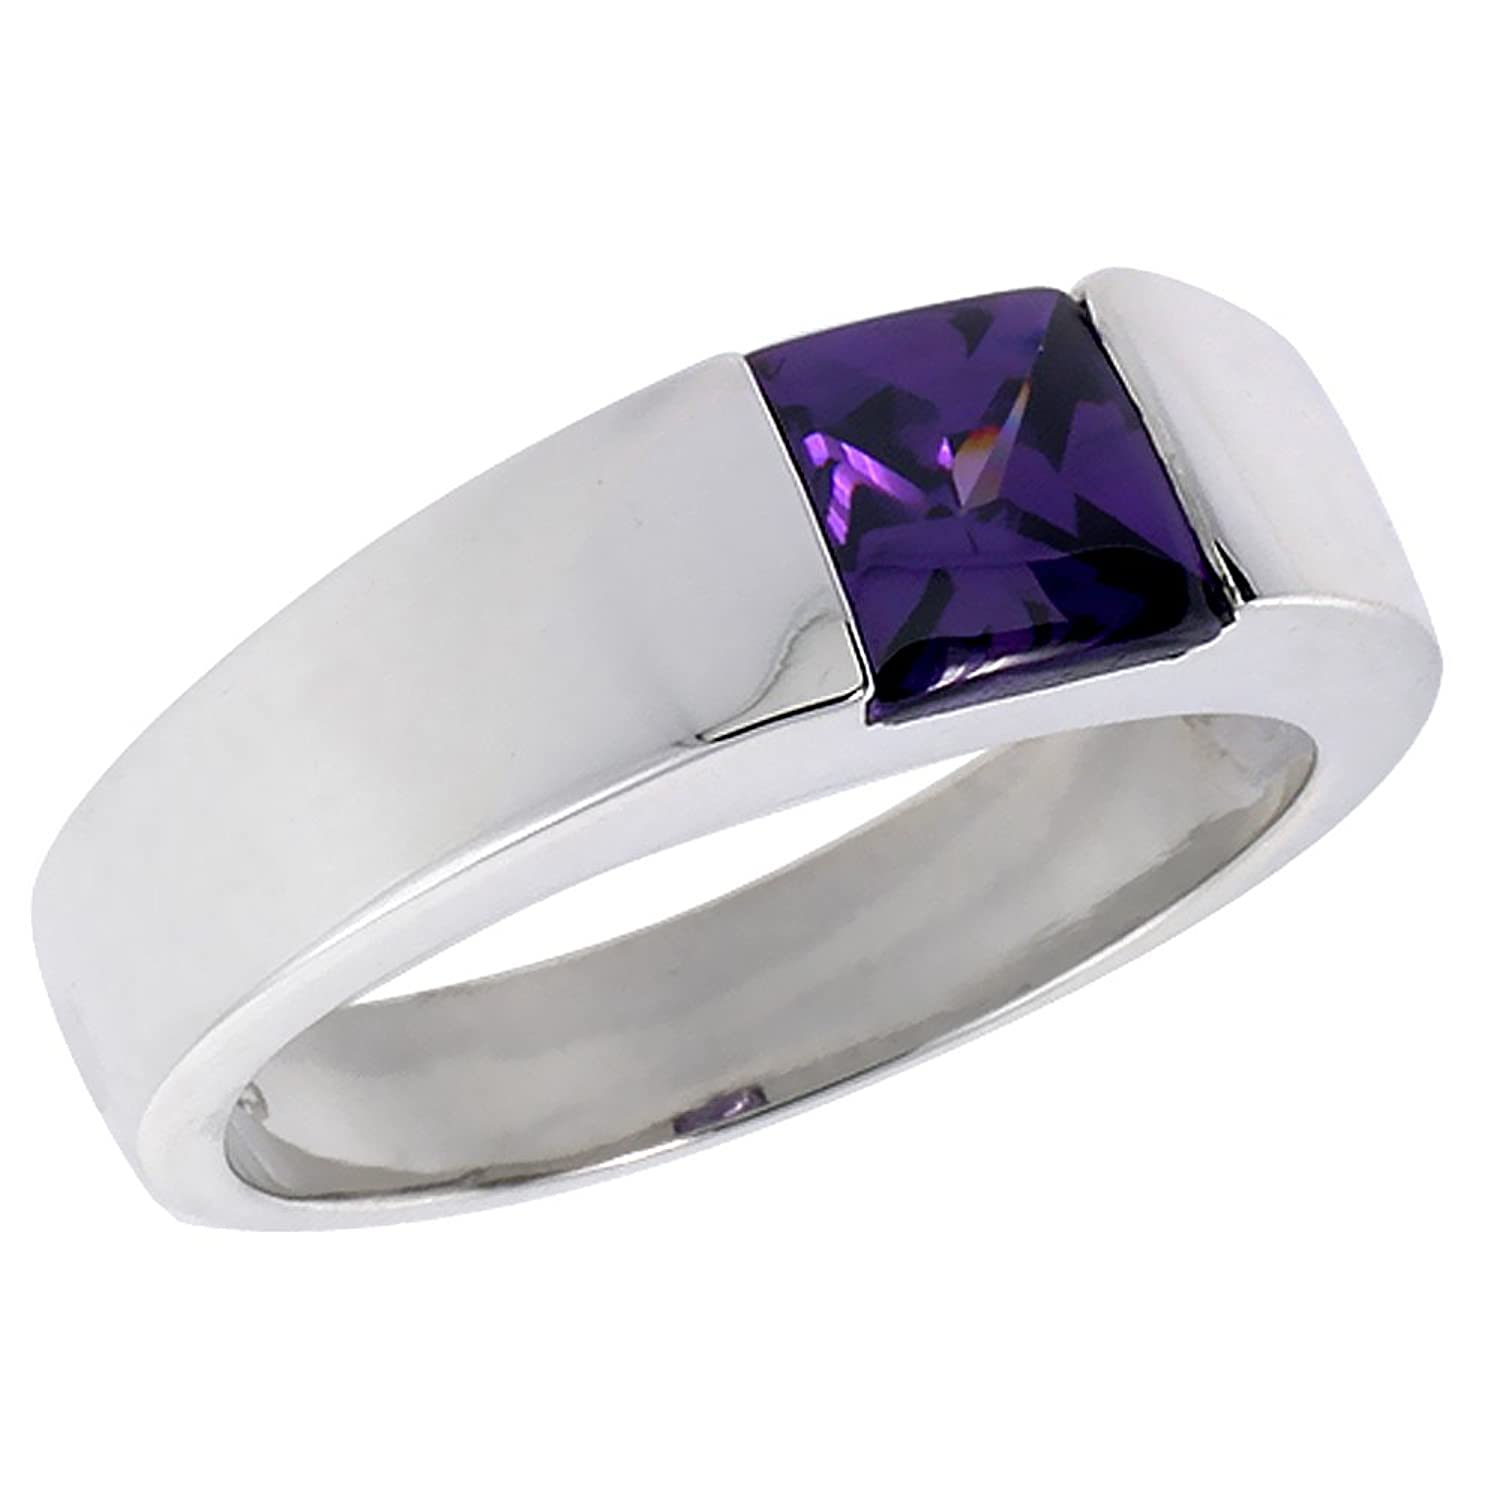 rings gold in white cut cubic zirconia plated sterling silver ring p purple cushion amethyst over